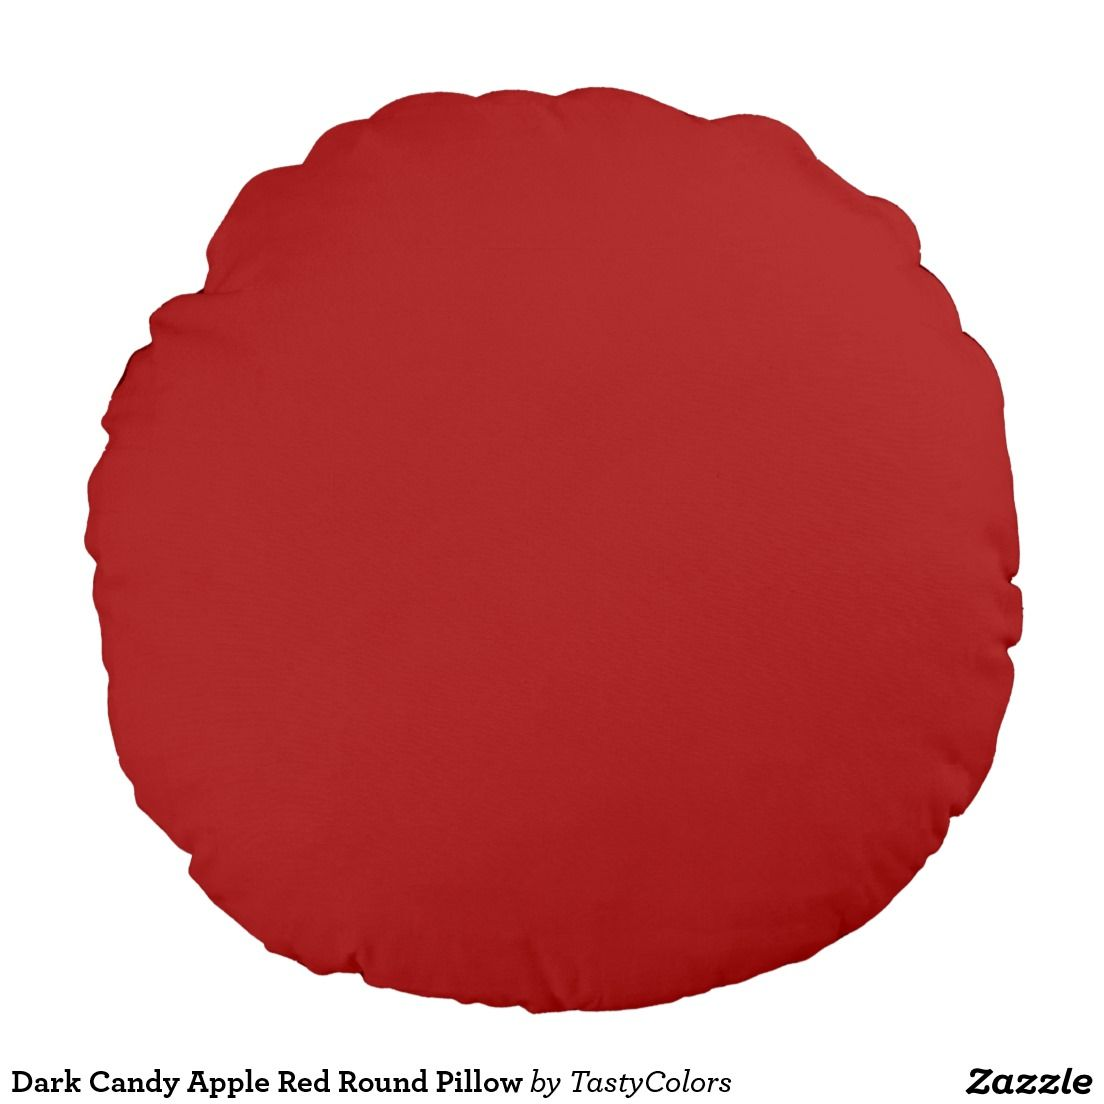 Dark Candy Apple Red Round Pillow